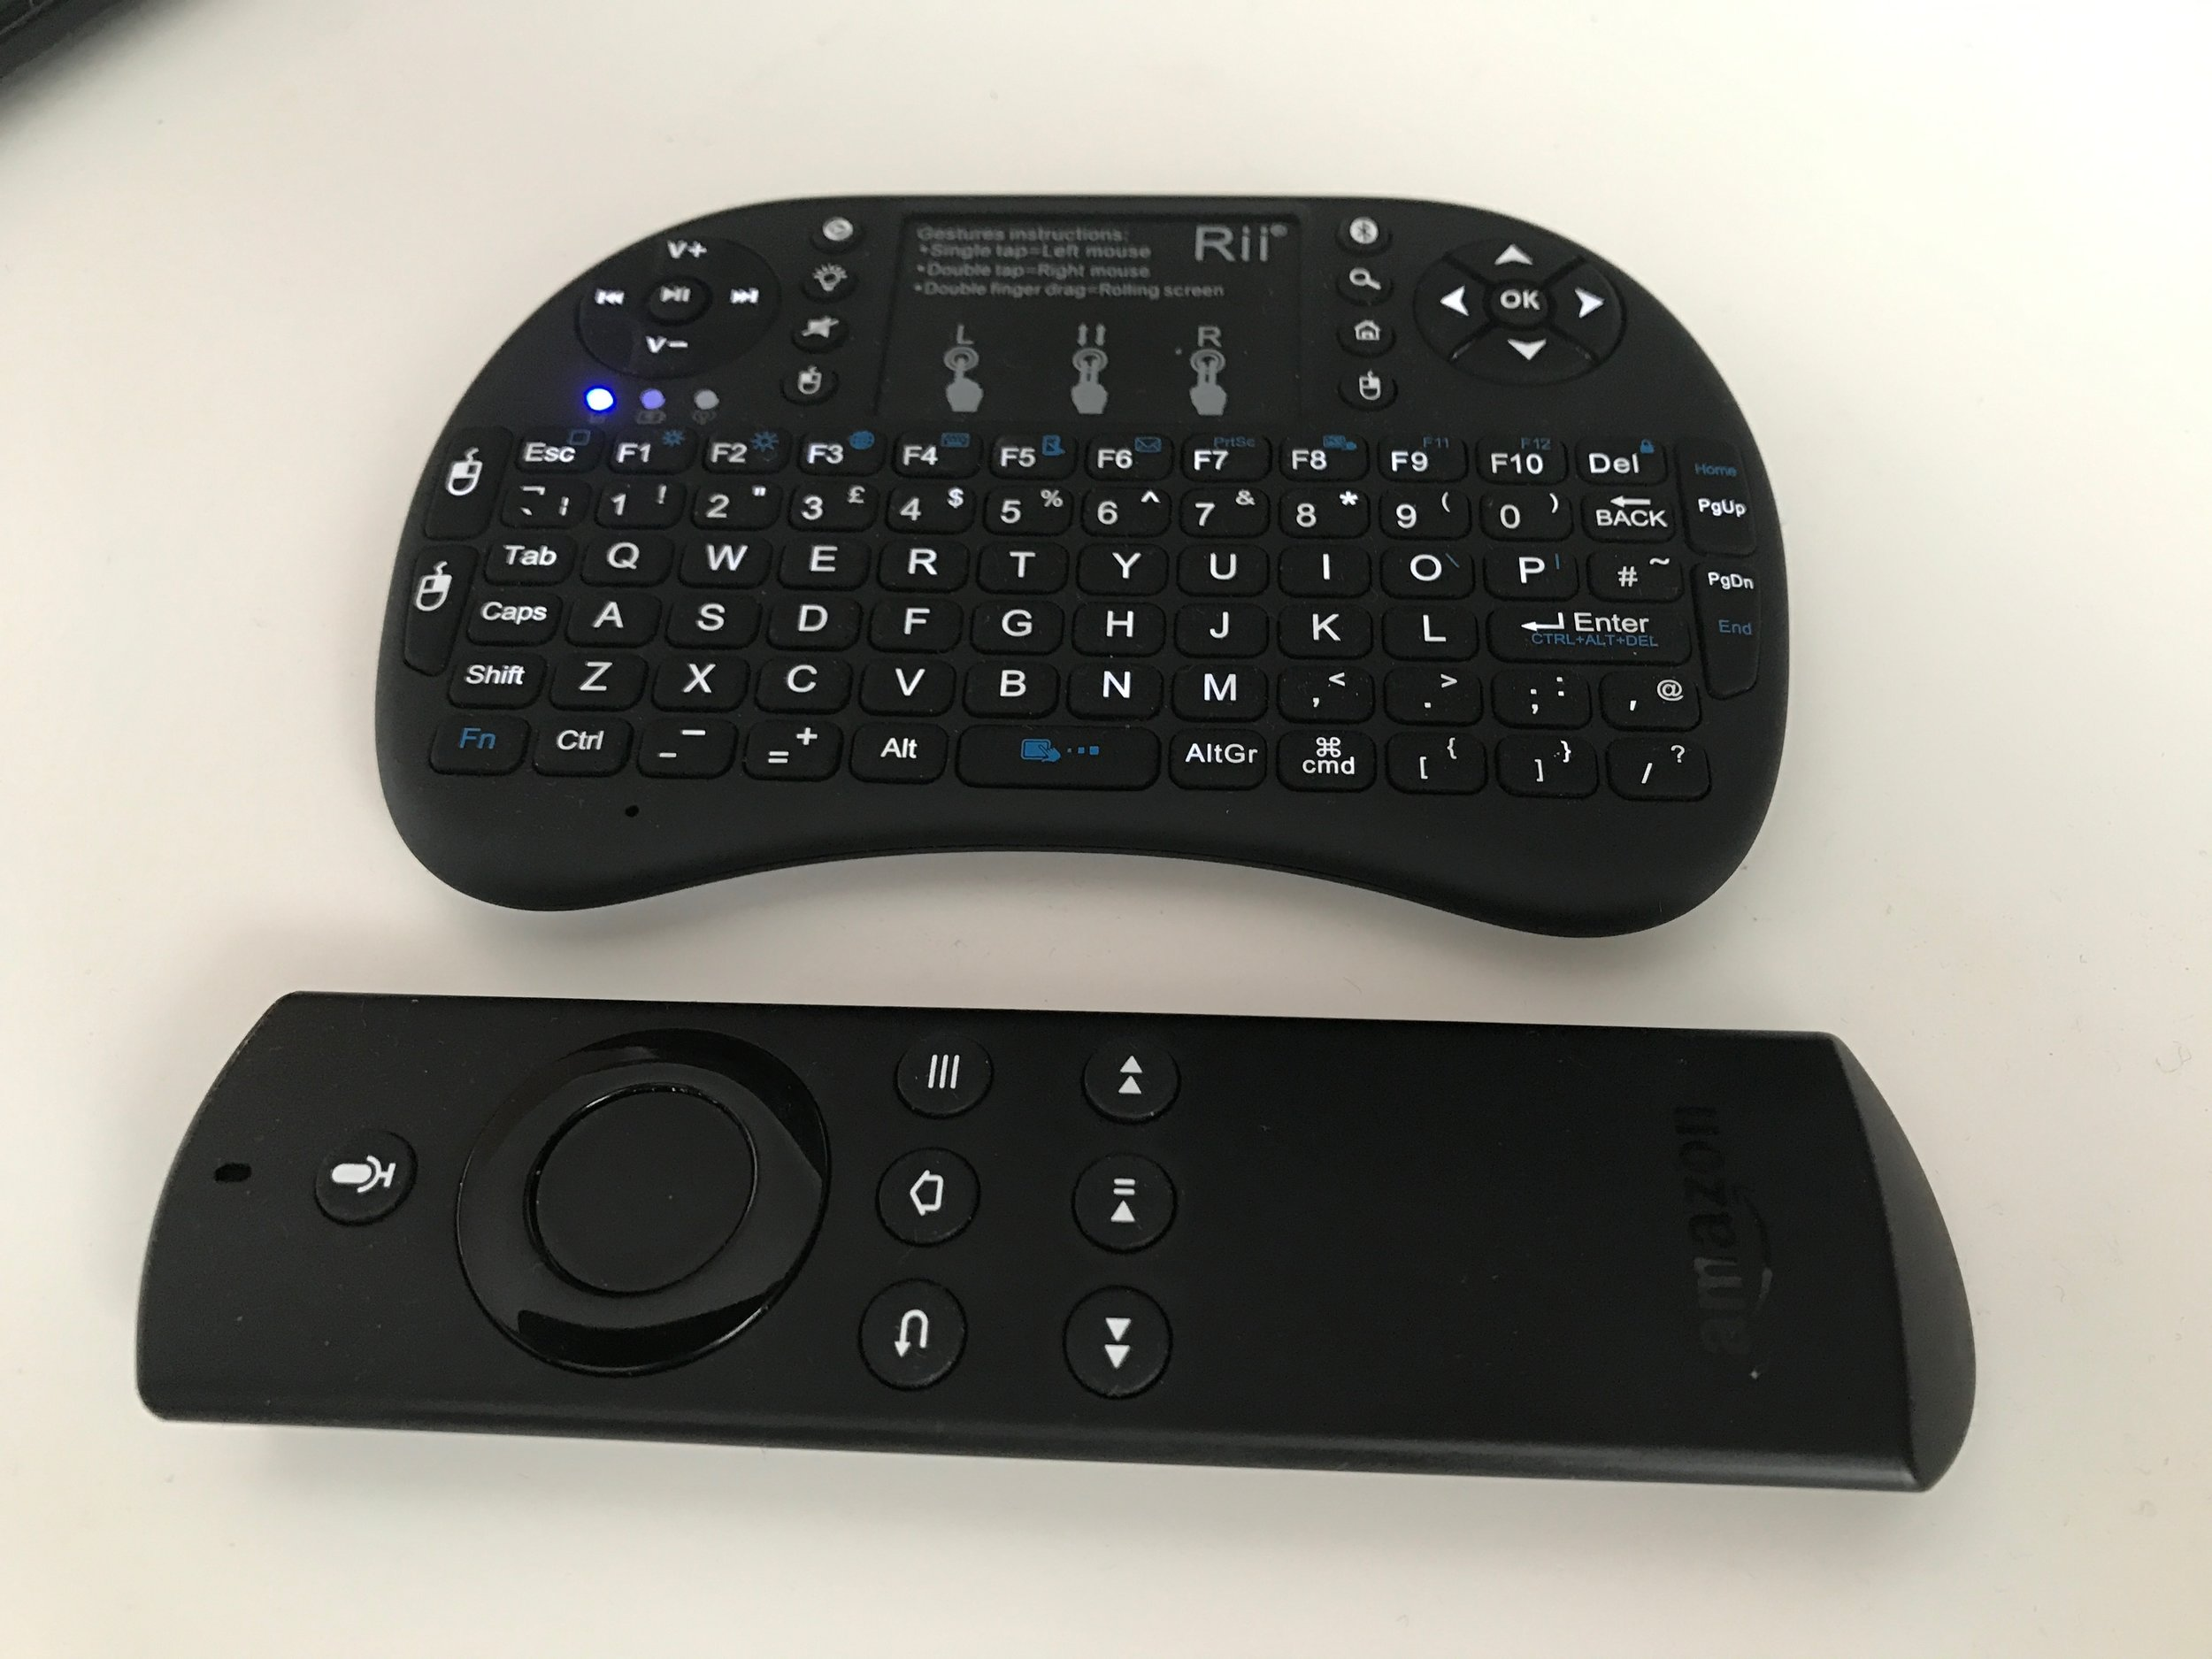 Compared to Firestick Controller